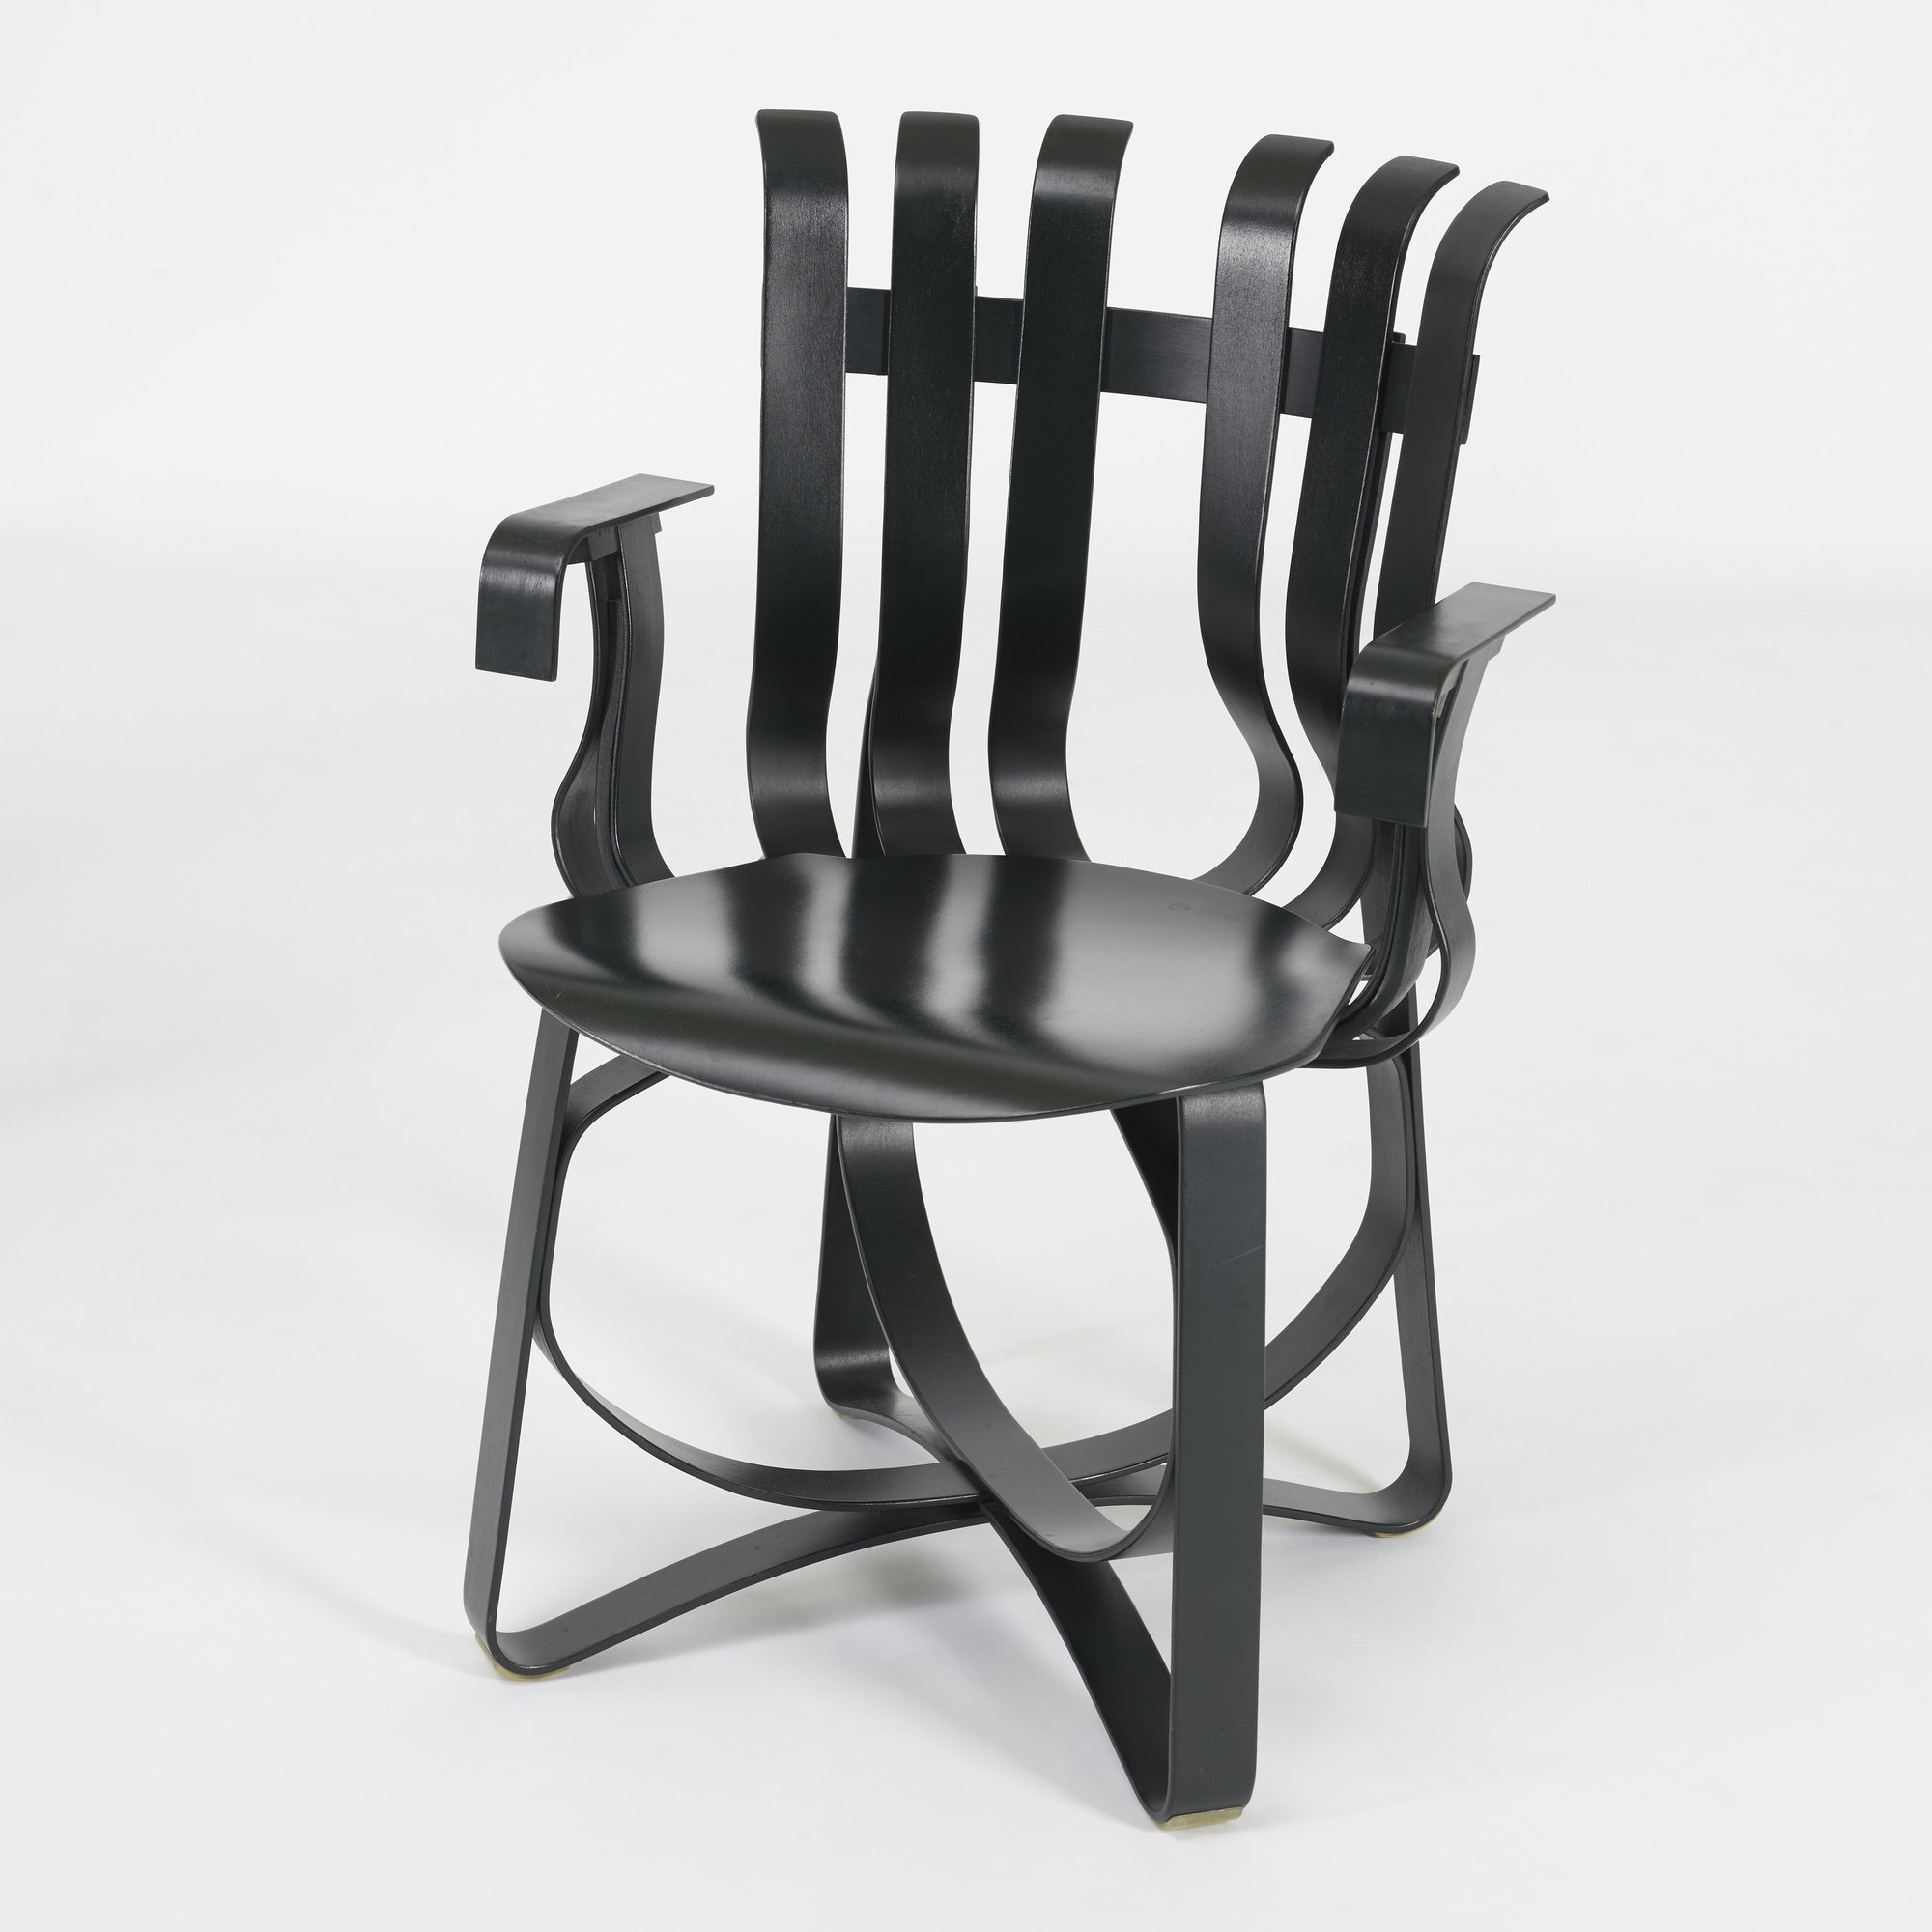 198: FRANK GEHRY, Hat Trick chairs, set of eight < Art +